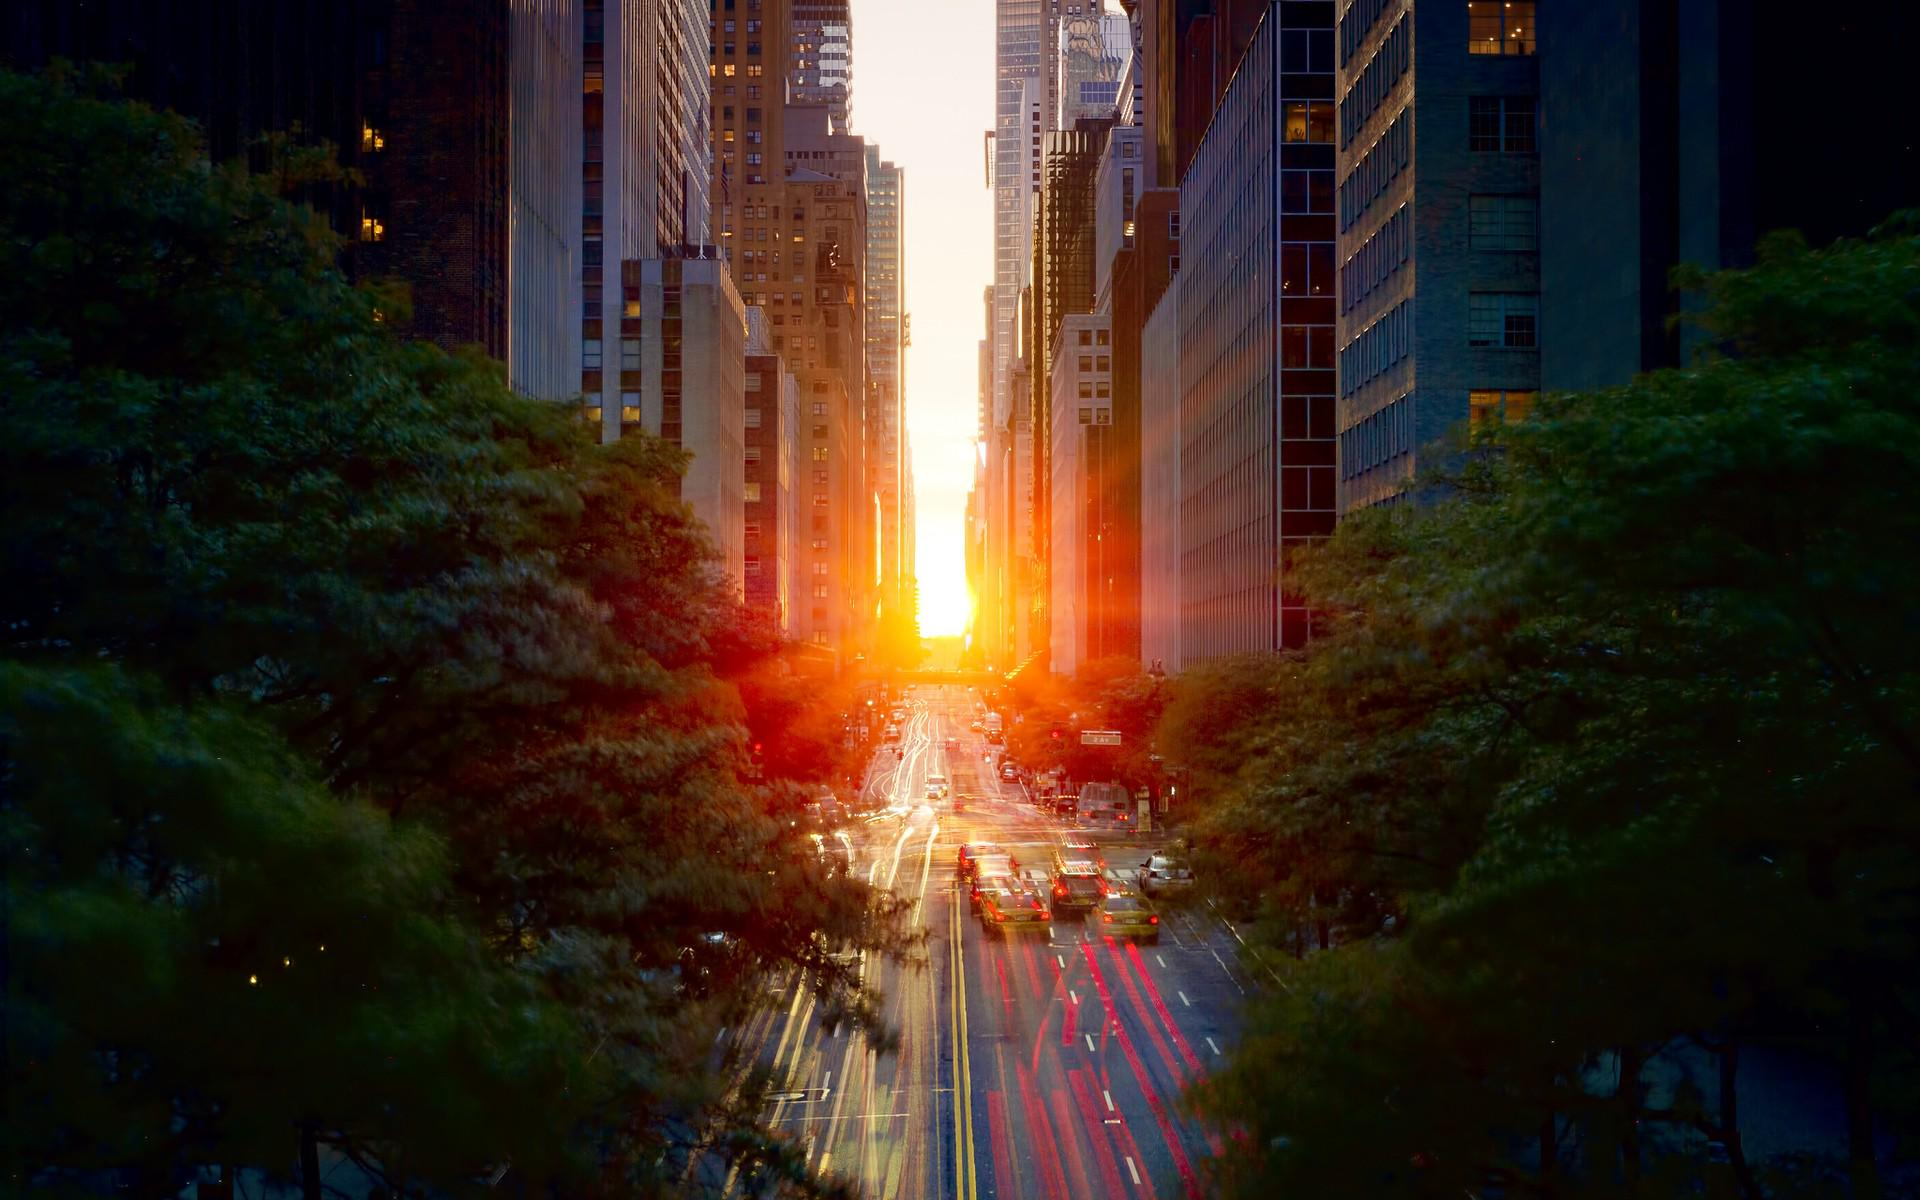 """Manhattanhenge"" is a biannual solar event where the rising or setting sun aligns with Manhattan streets. http://t.co/q6DZe8aB3g"